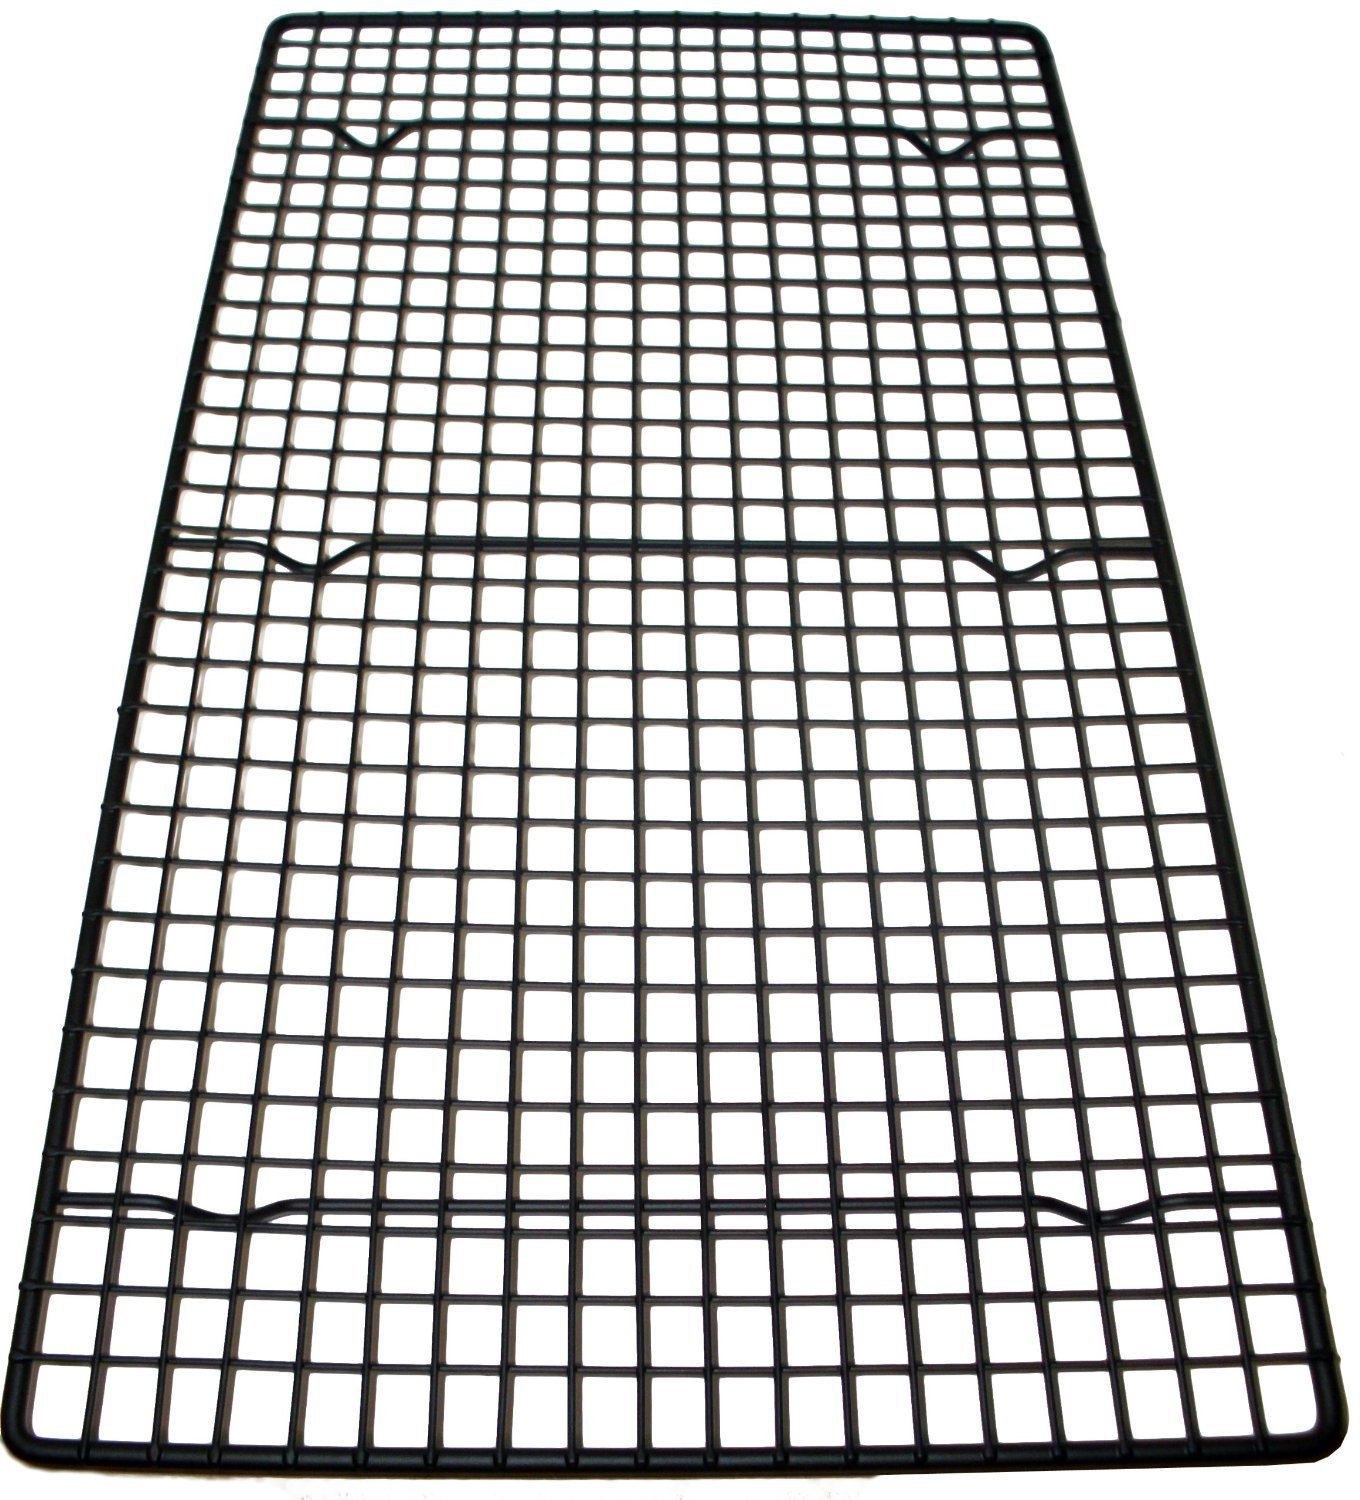 Southern Homewares Oversized Wire Baking Cooling Non-Stick Rack, 18 x 10, Black Cookie Pan 18 x 10 SH-10050